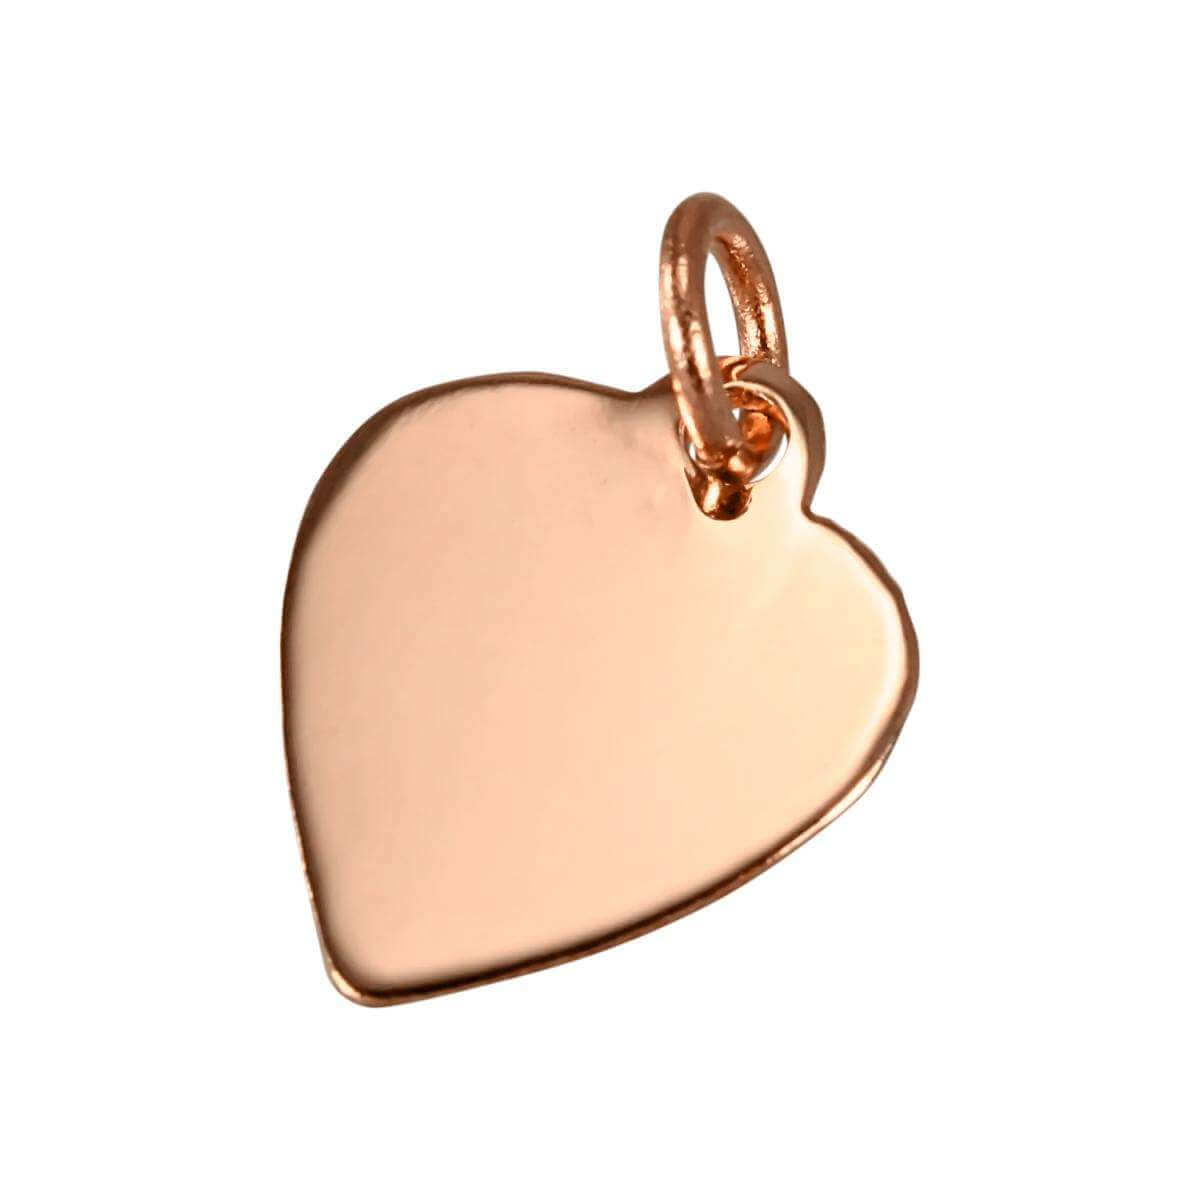 9ct Rose Gold Small Engravable Heart Pendant